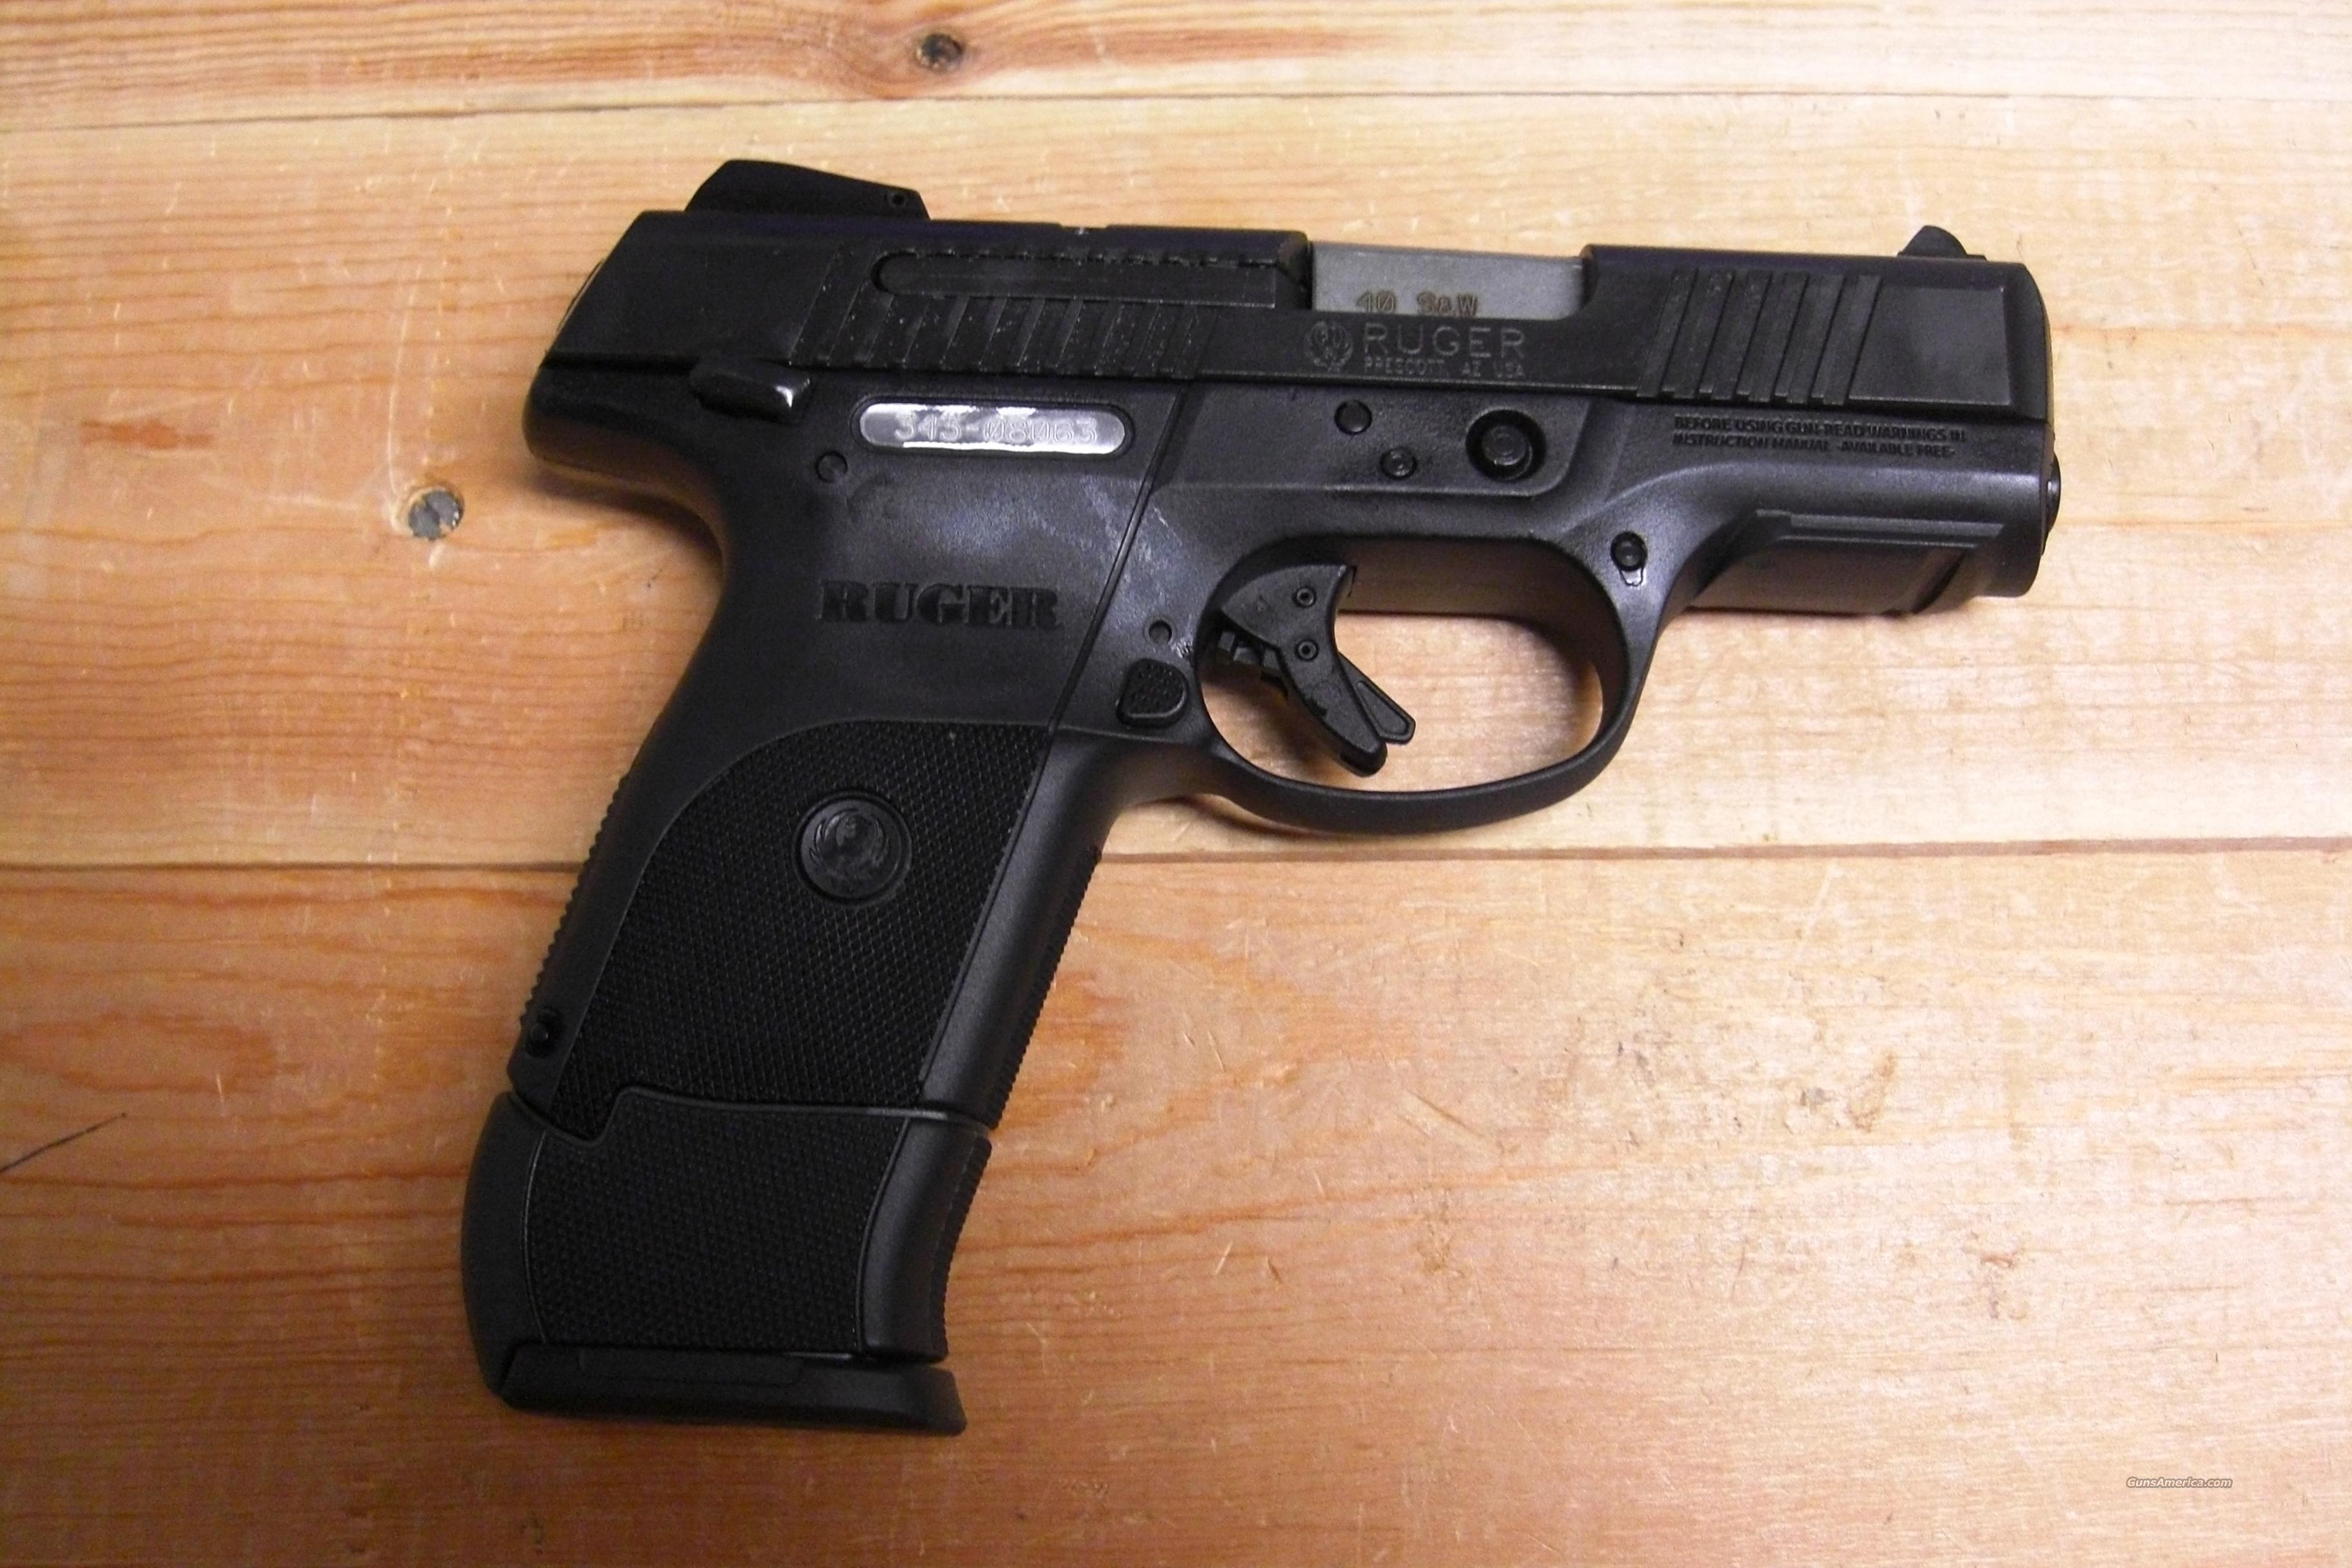 SR 40C w/black finish  Guns > Pistols > Ruger Semi-Auto Pistols > SR Family